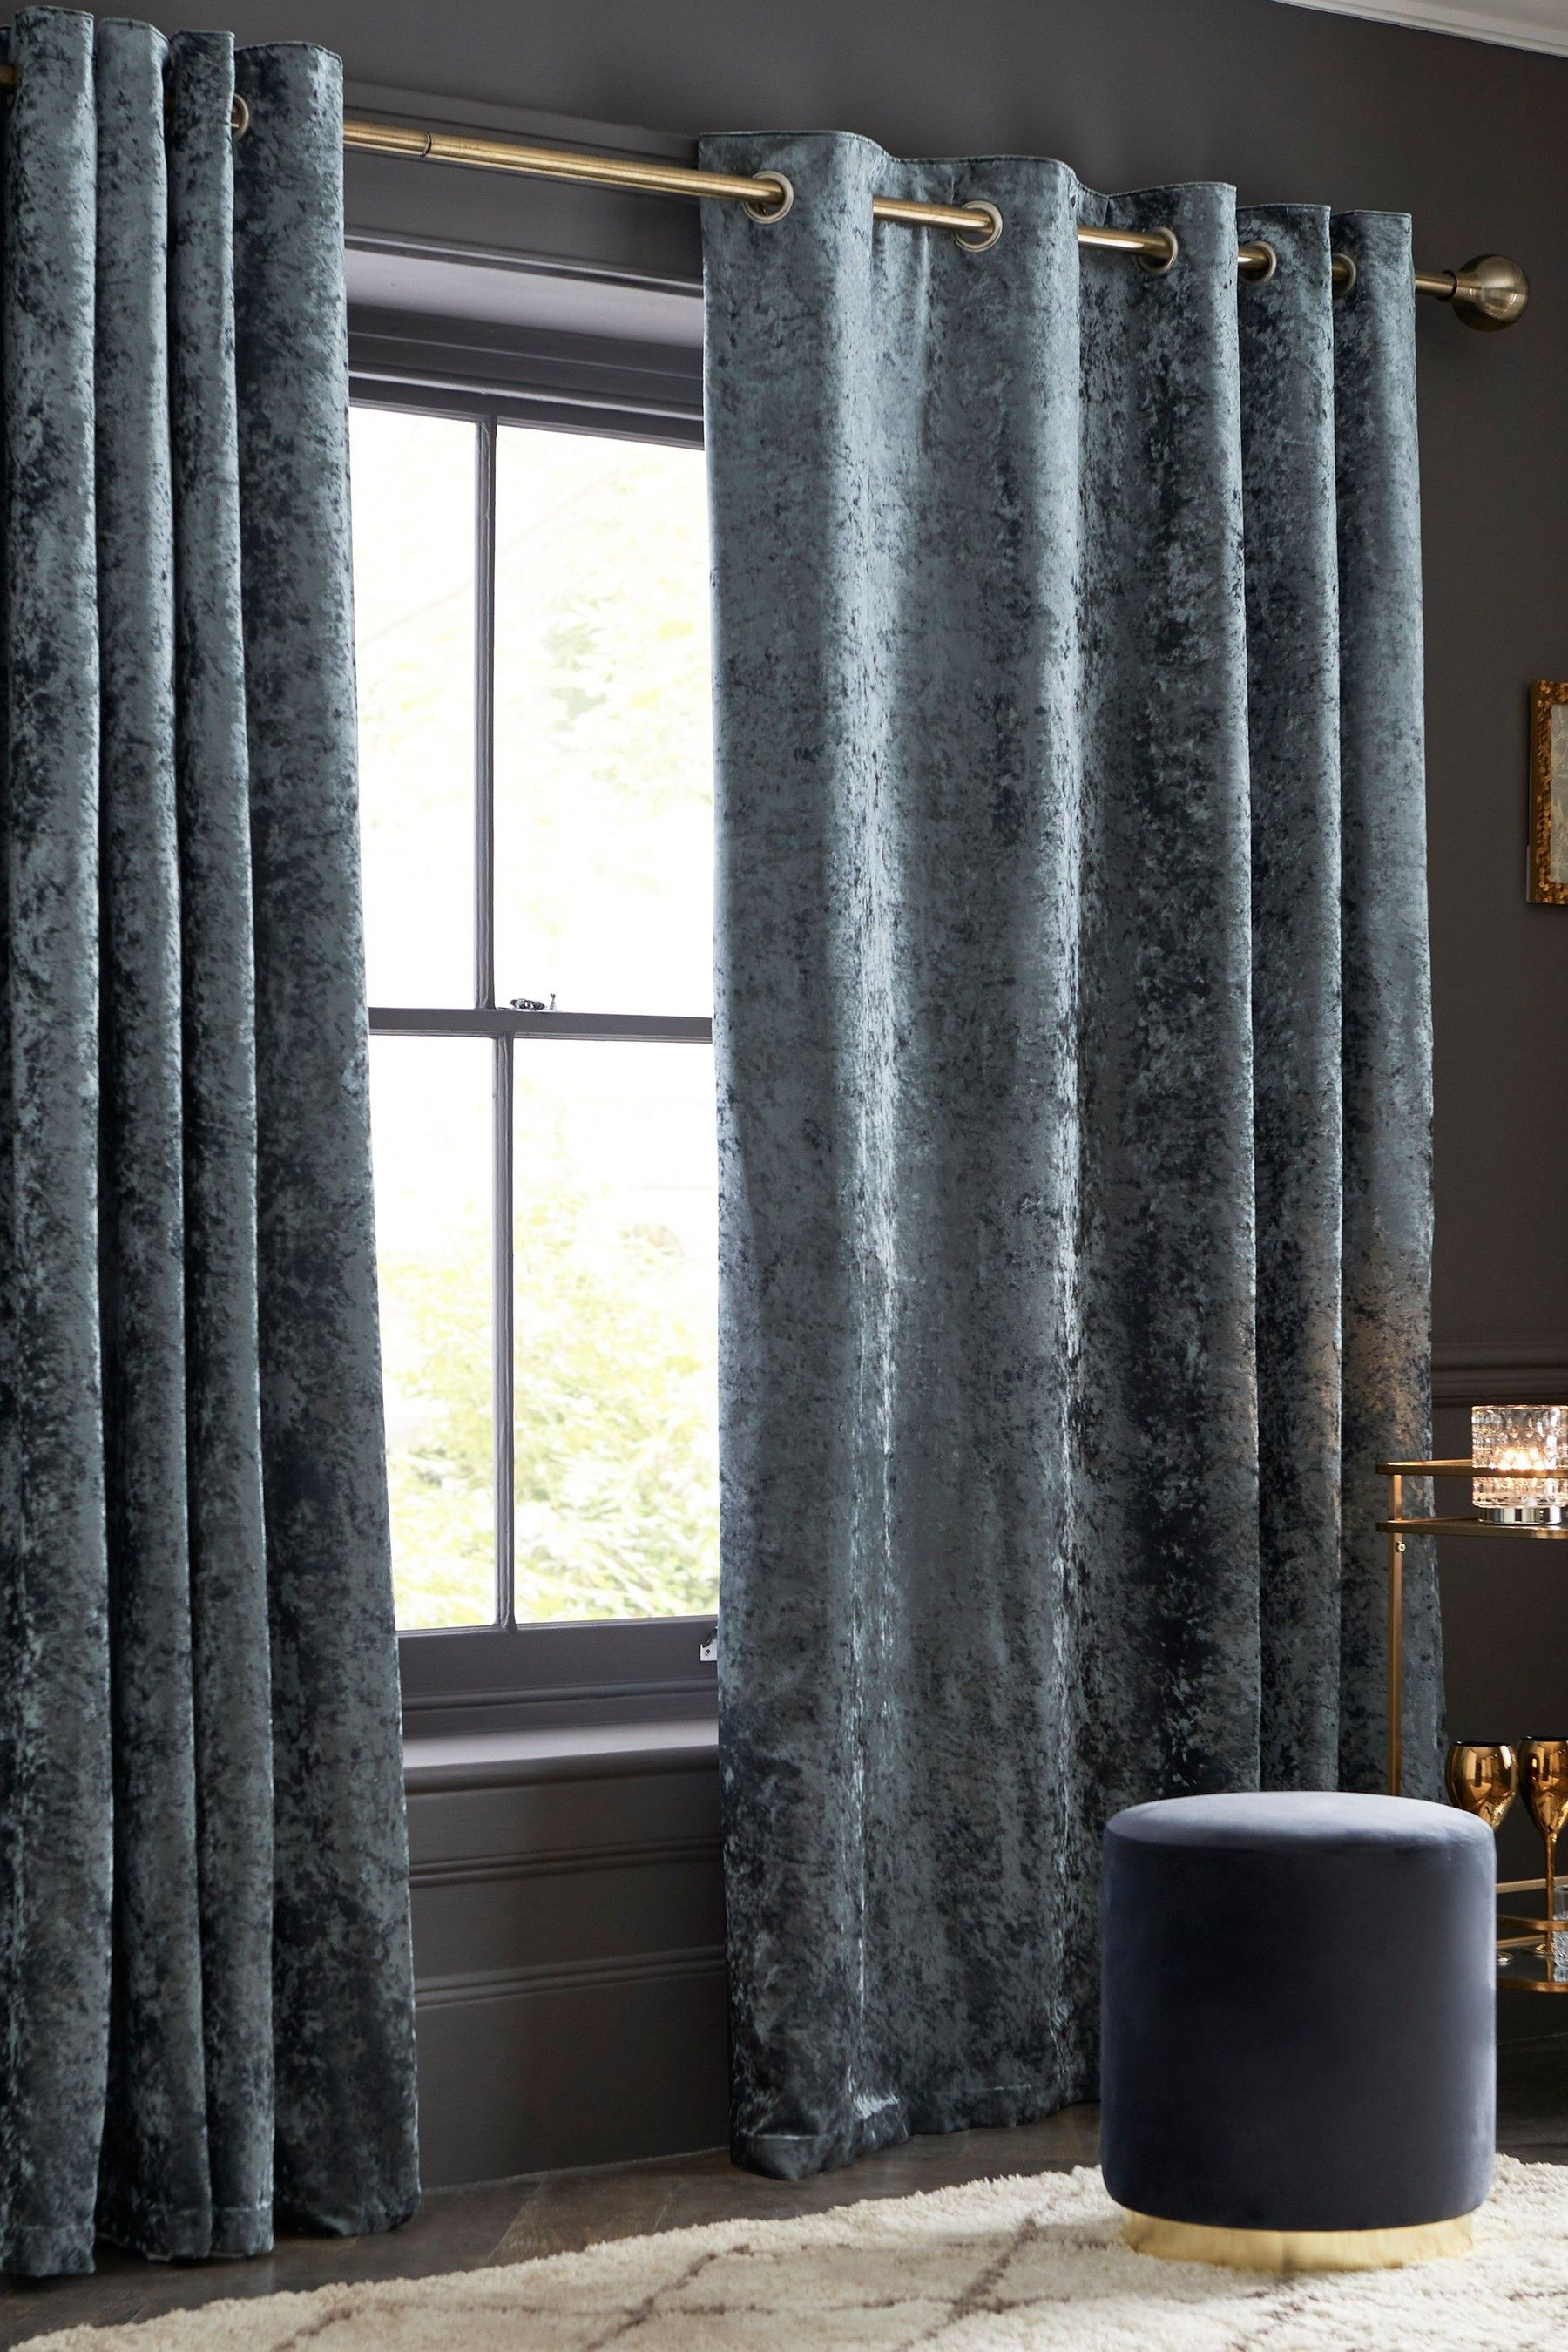 Next Crushed Velvet Eyelet Super Thermal Curtains Grey In 2020 Velvet Curtains Lined Curtains Curtains